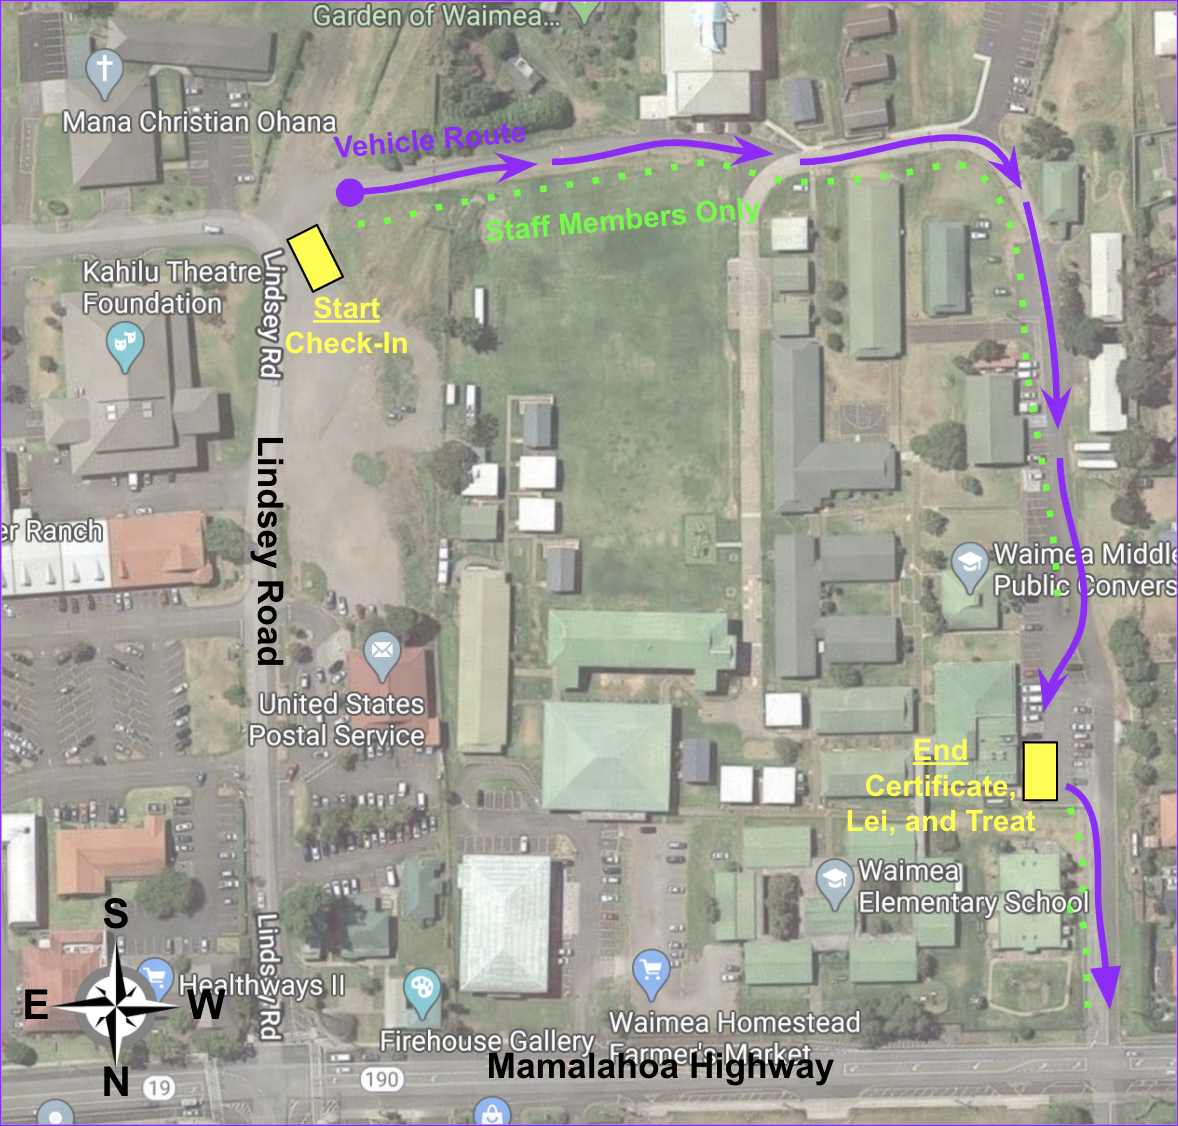 Exit Parade Route map